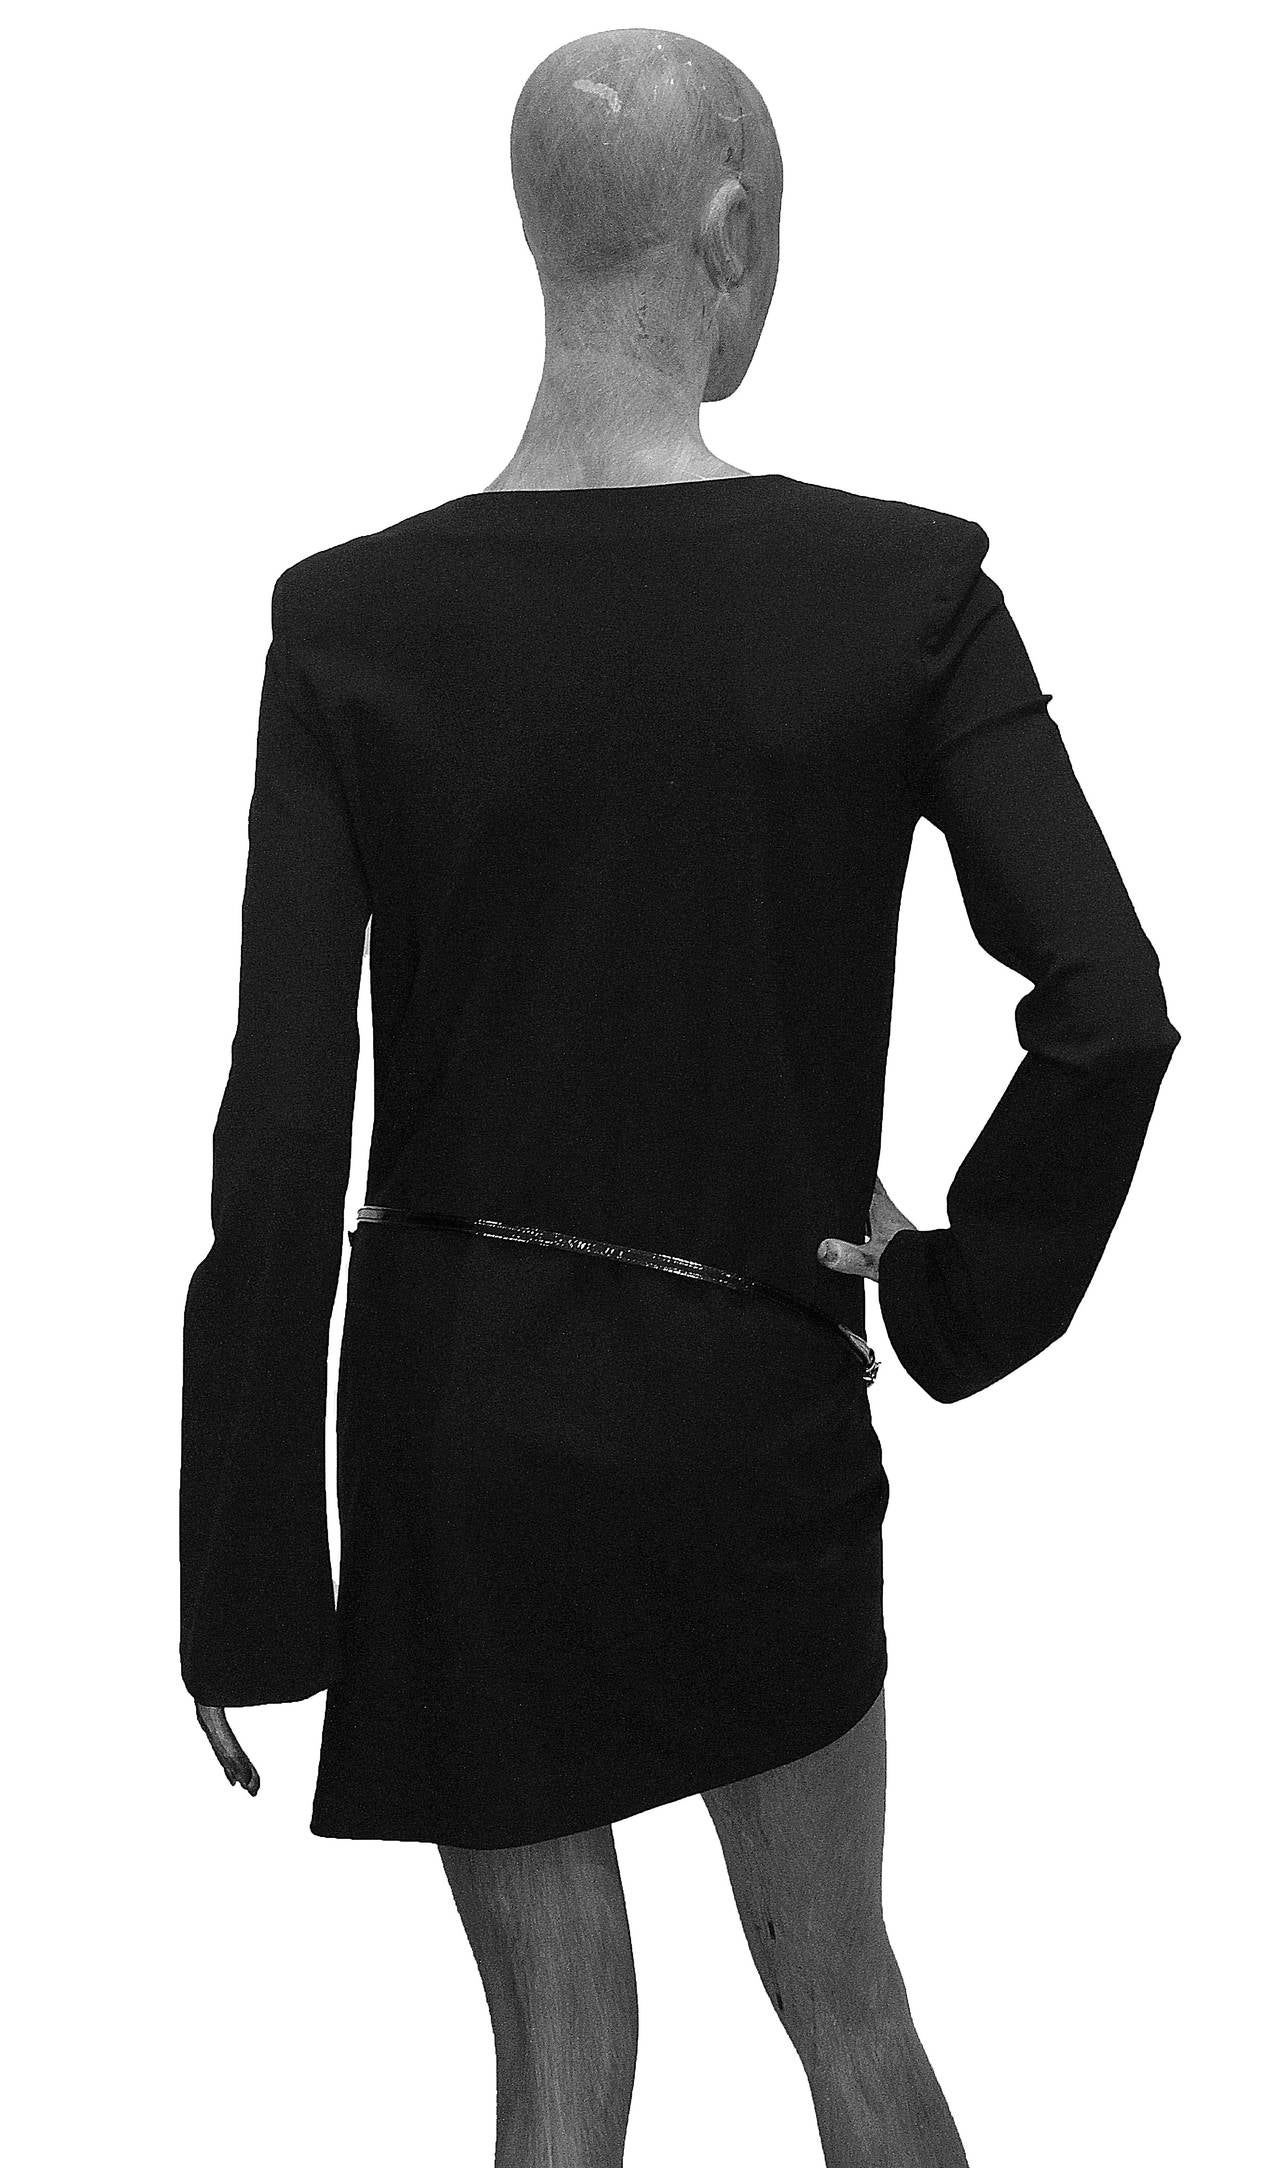 Iconic 90s Tom Ford for Gucci Little Black Dress c. 1997 In Excellent Condition In London, GB